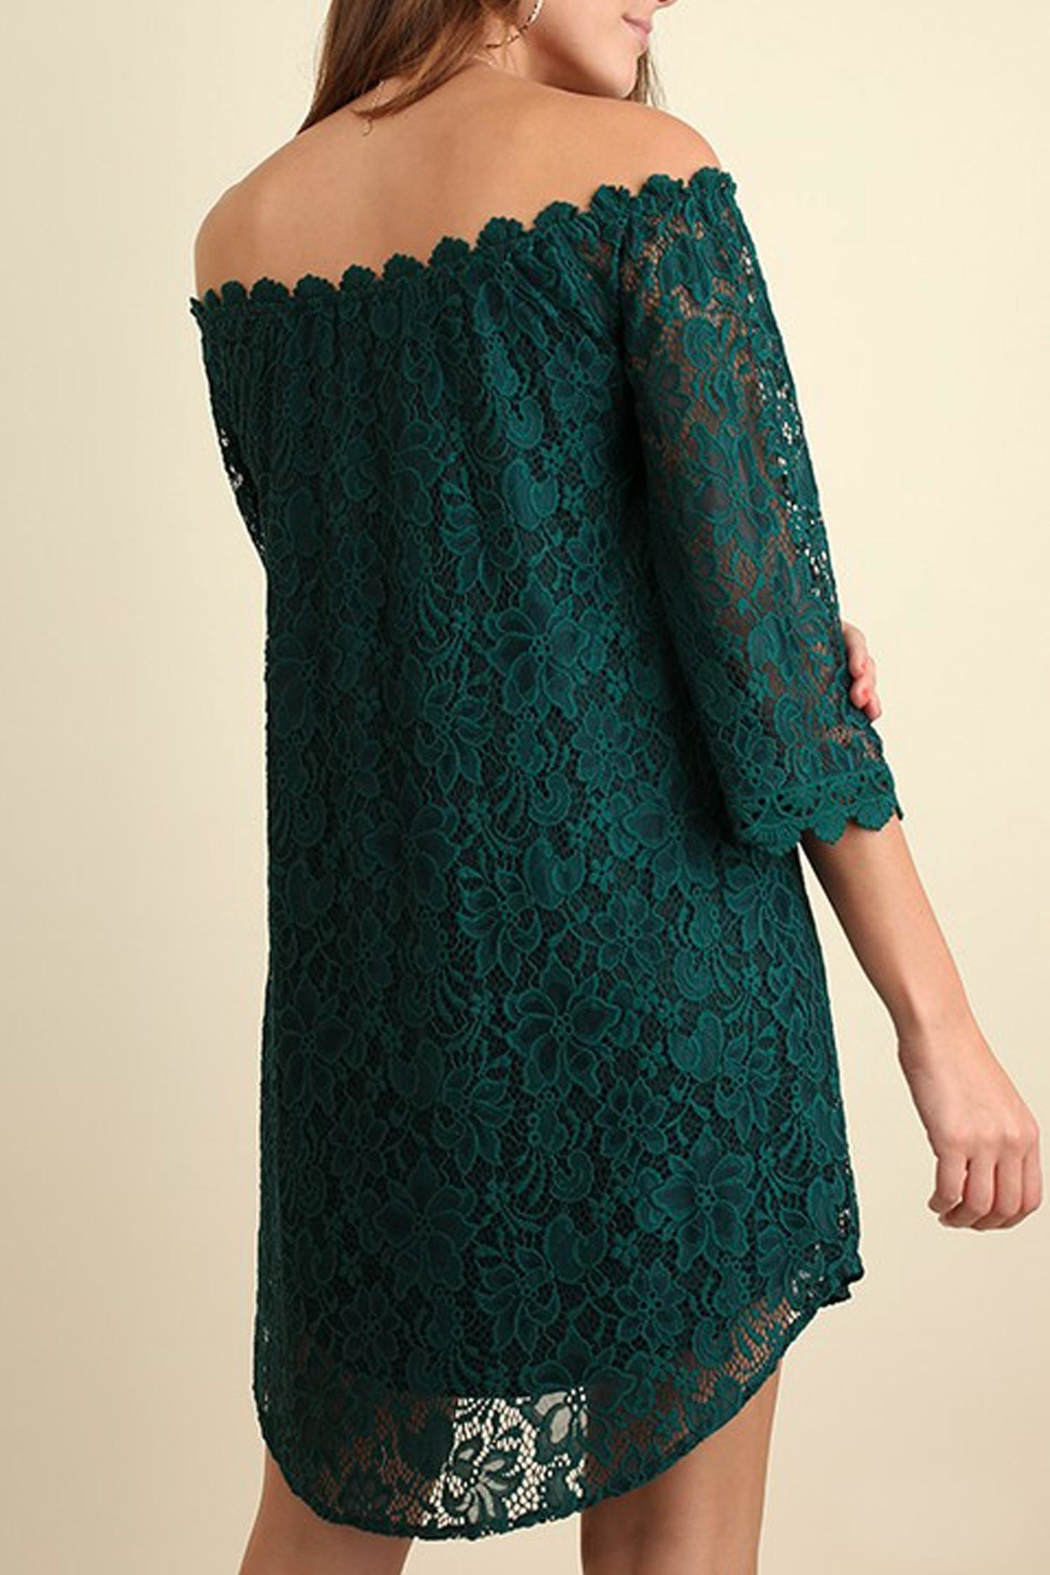 Umgee USA Green Lace Dress - Front Full Image